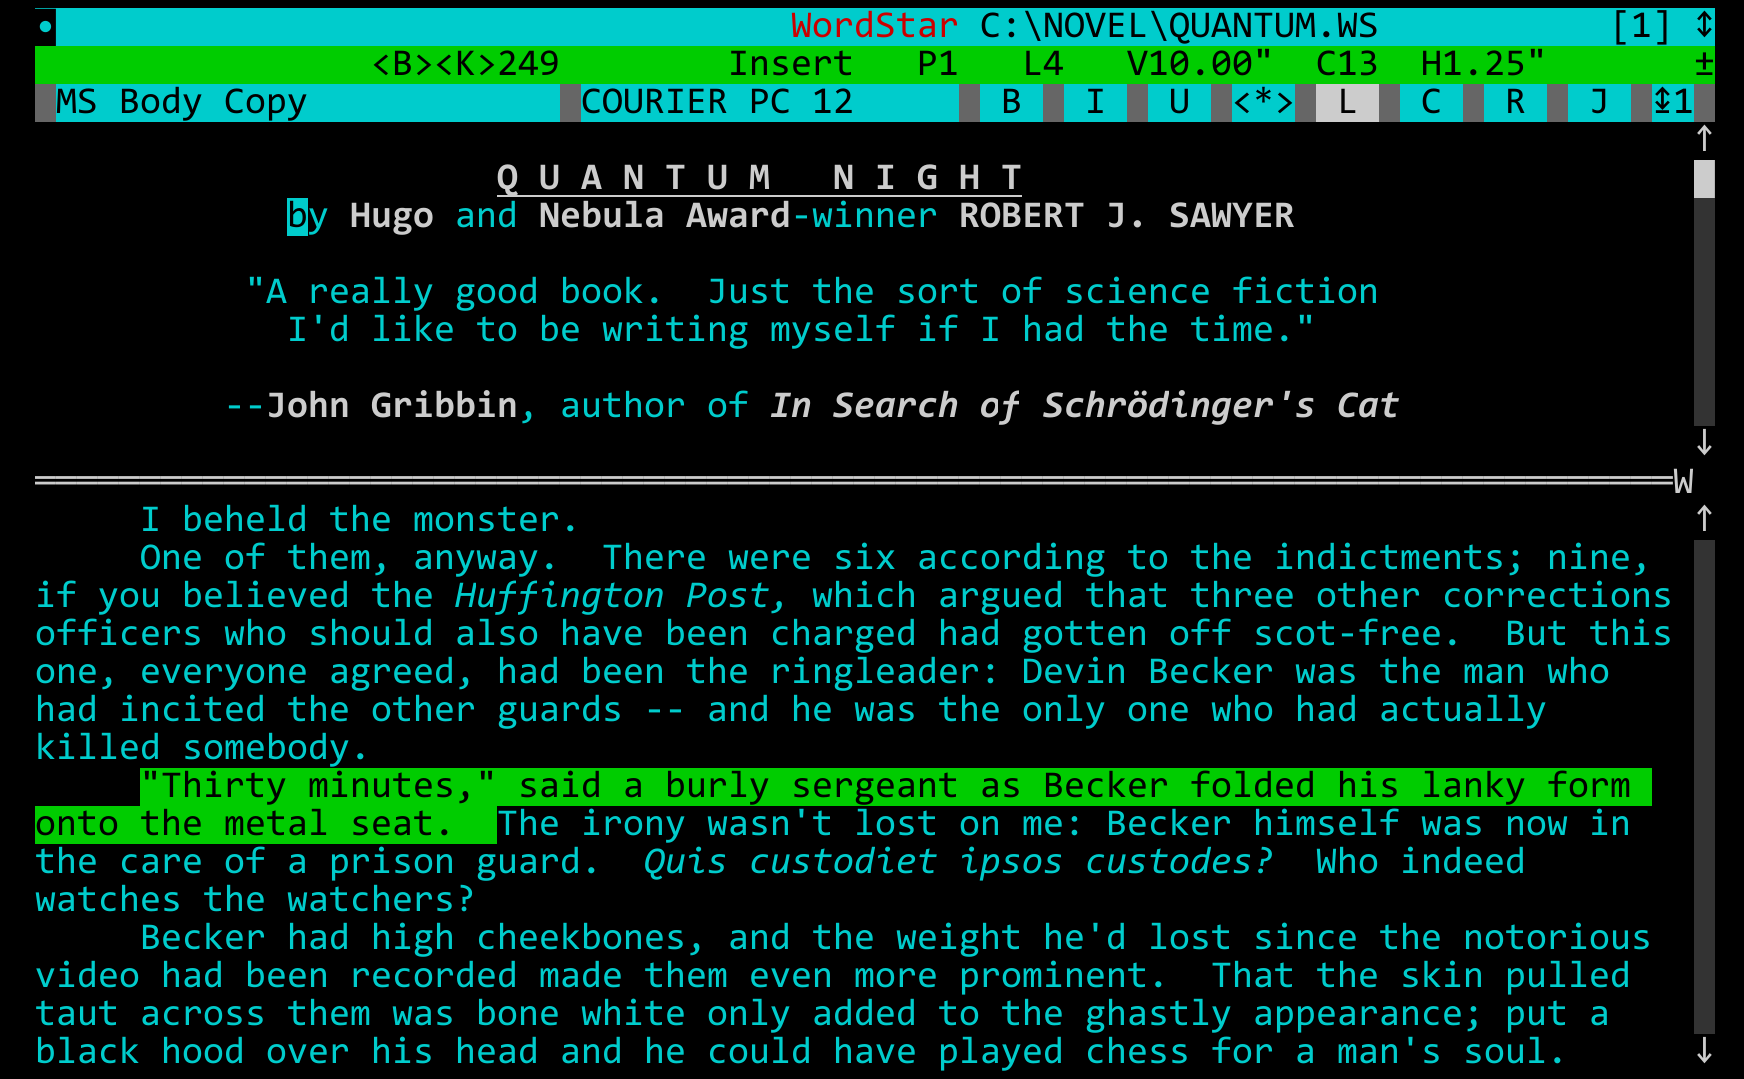 science fiction writer robert j sawyer wordstar a writer s word wordstar under vdosplus many science fiction